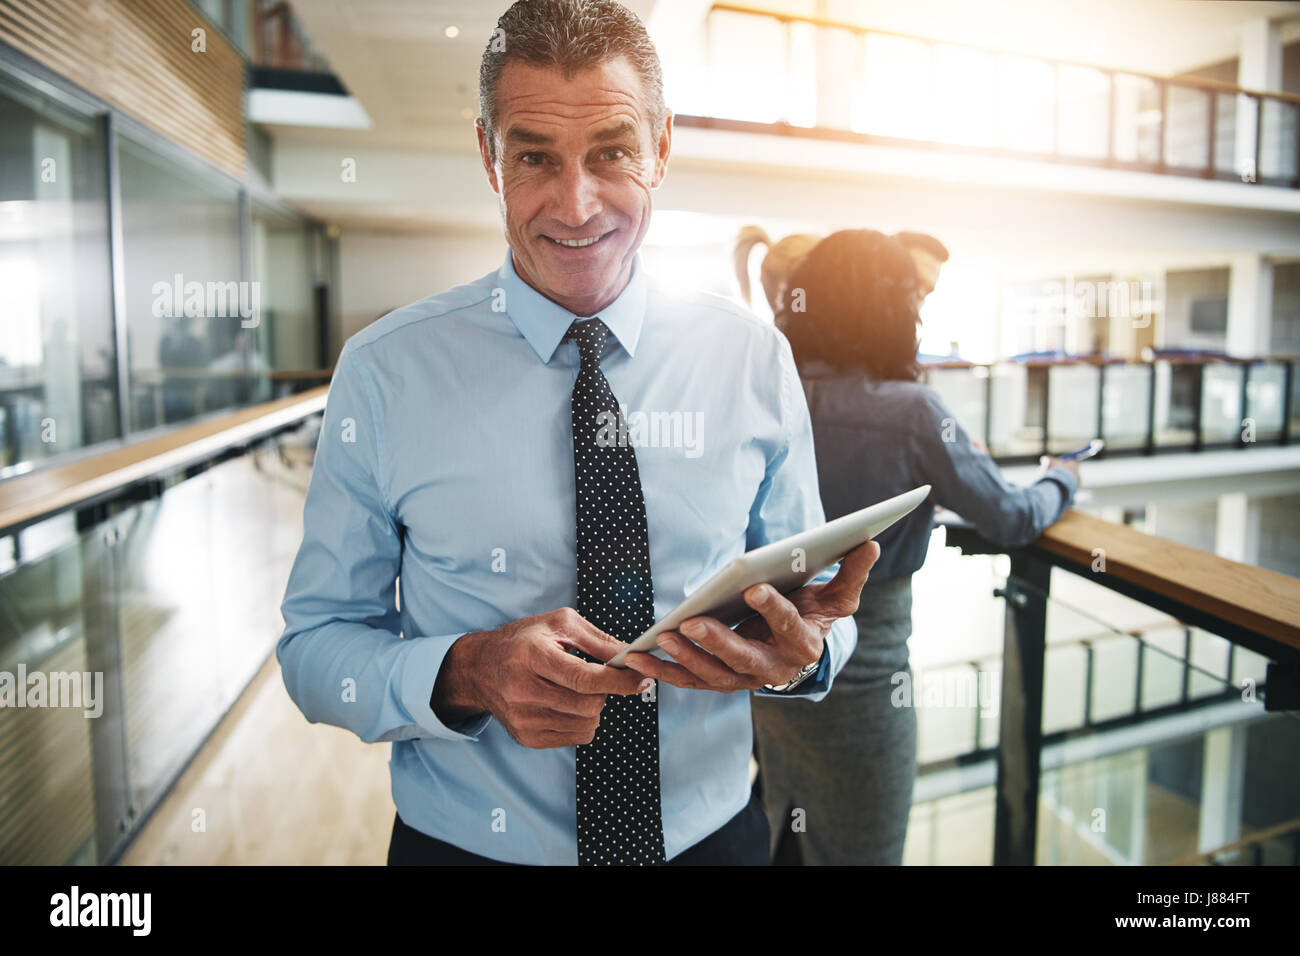 Handsome mature office worker standing with tablet and looking at camera. - Stock Image